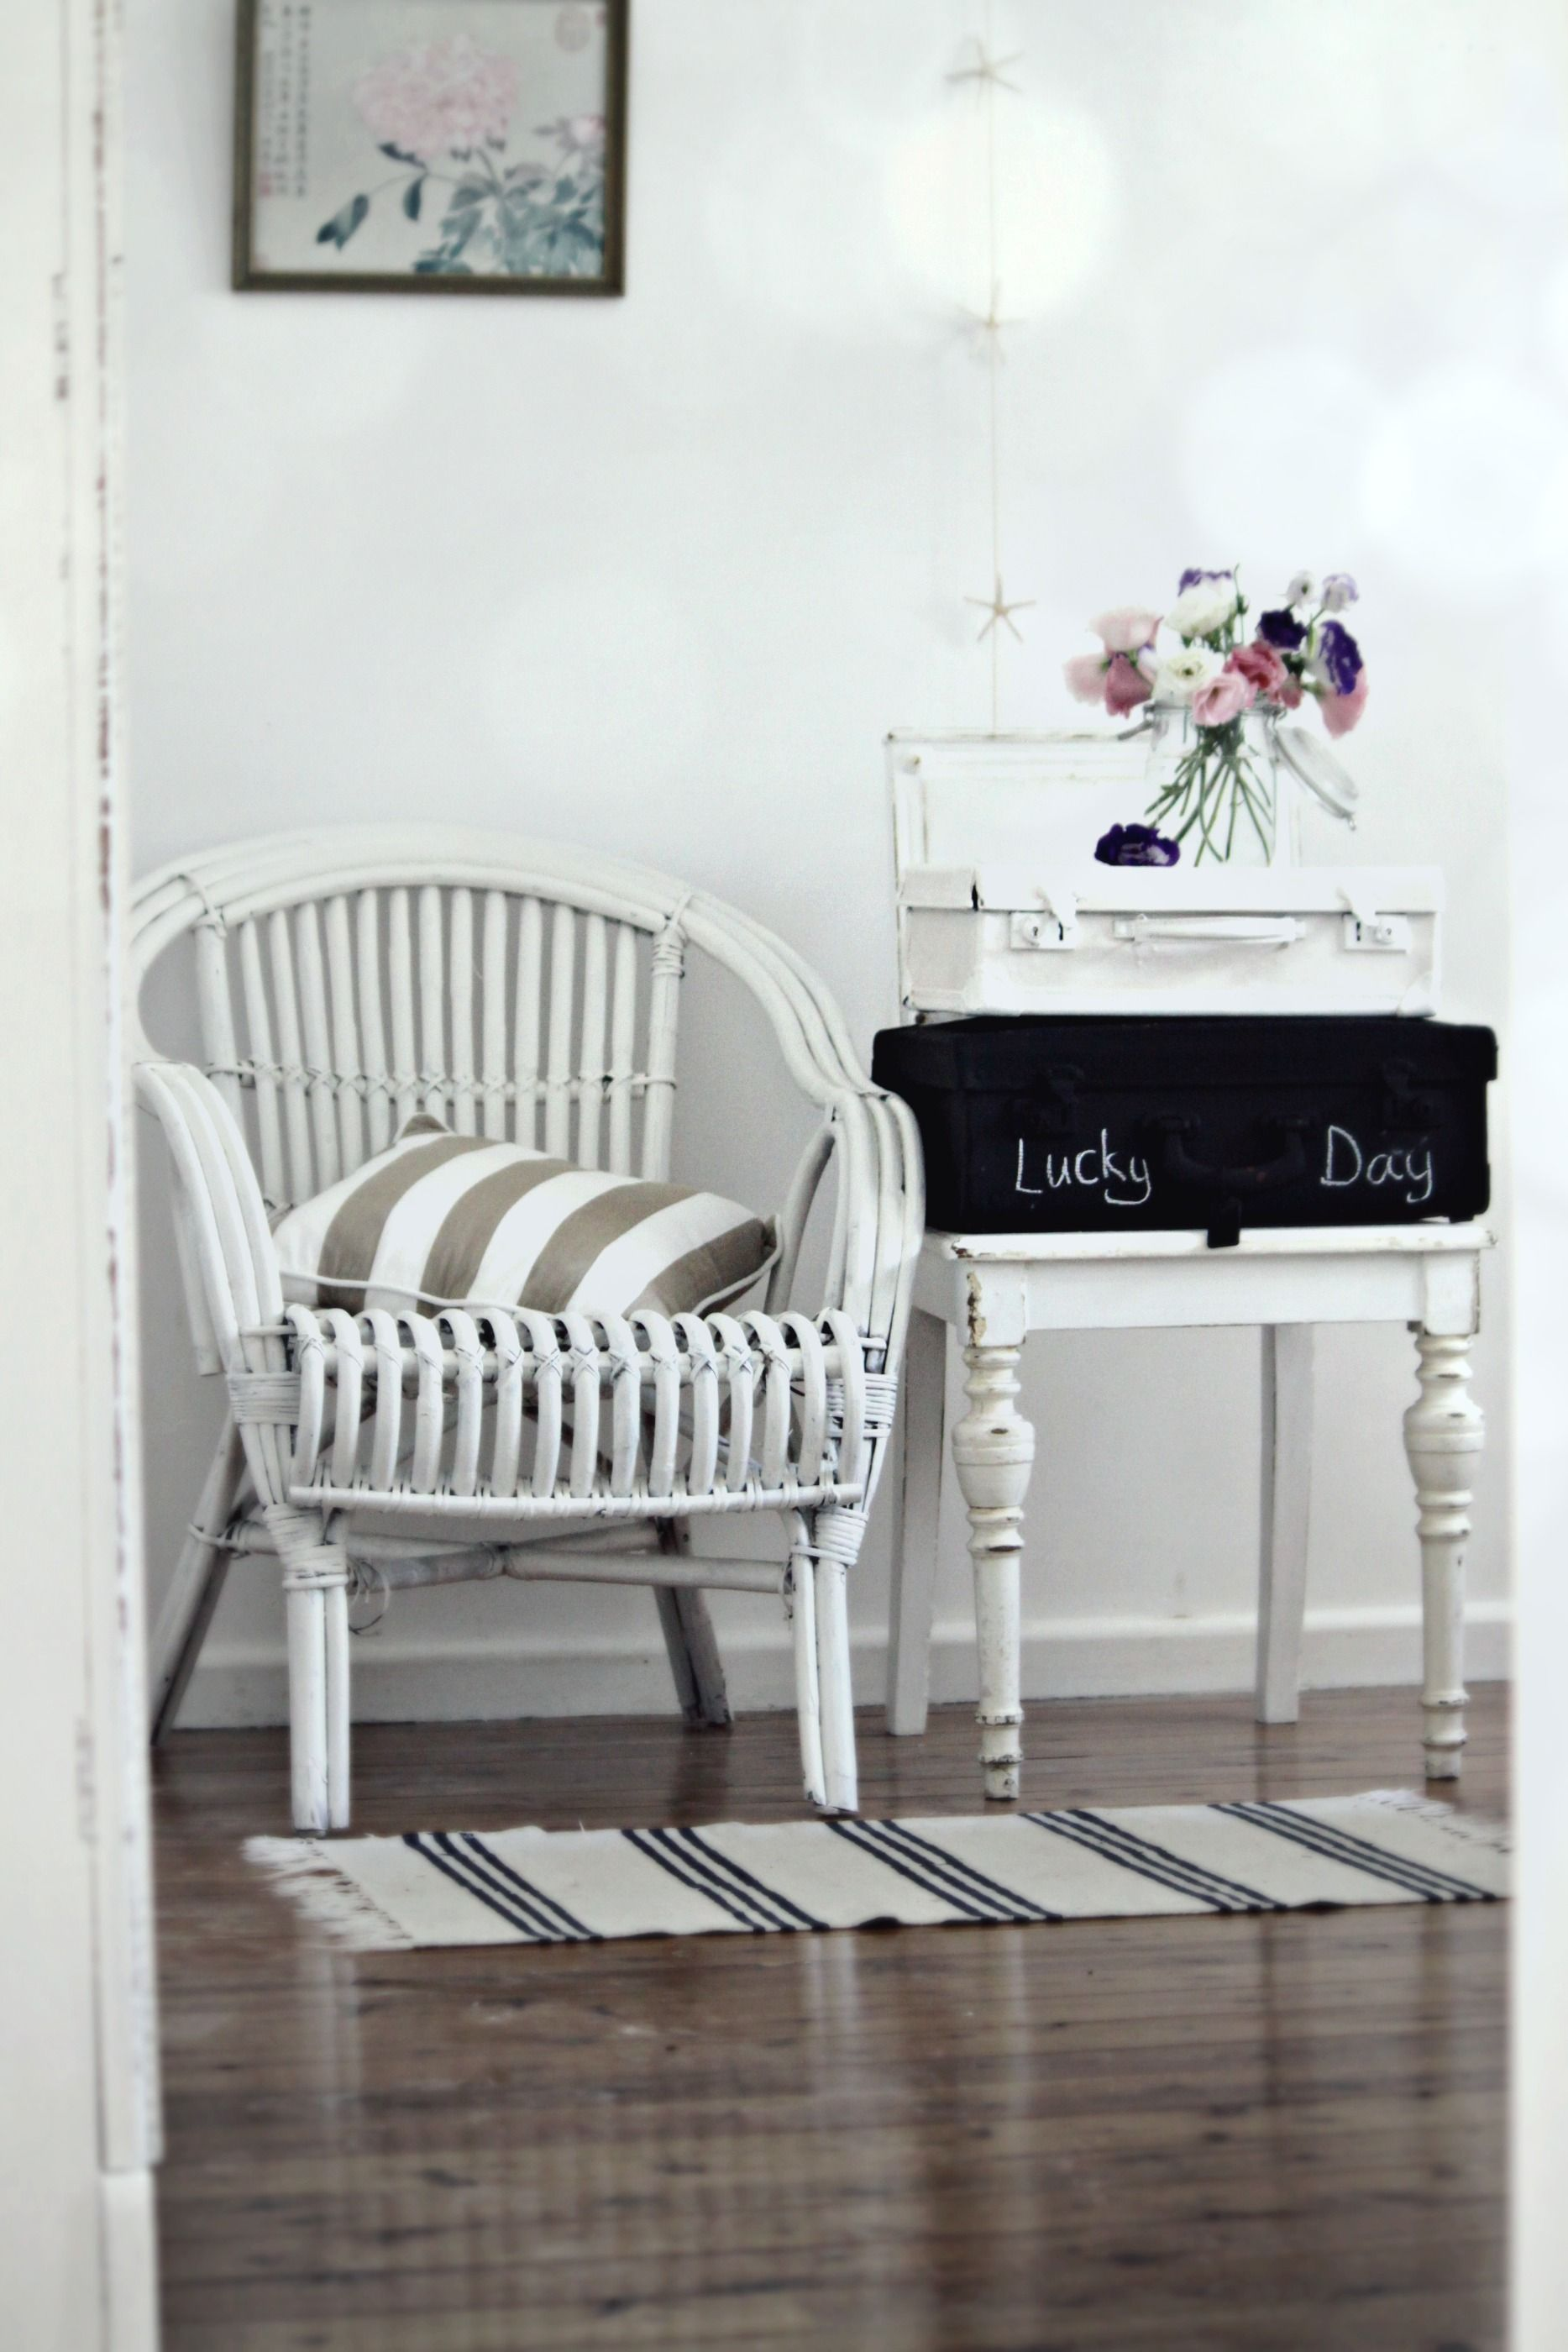 The decor of the old suitcase - ideas for the interior 75 photos